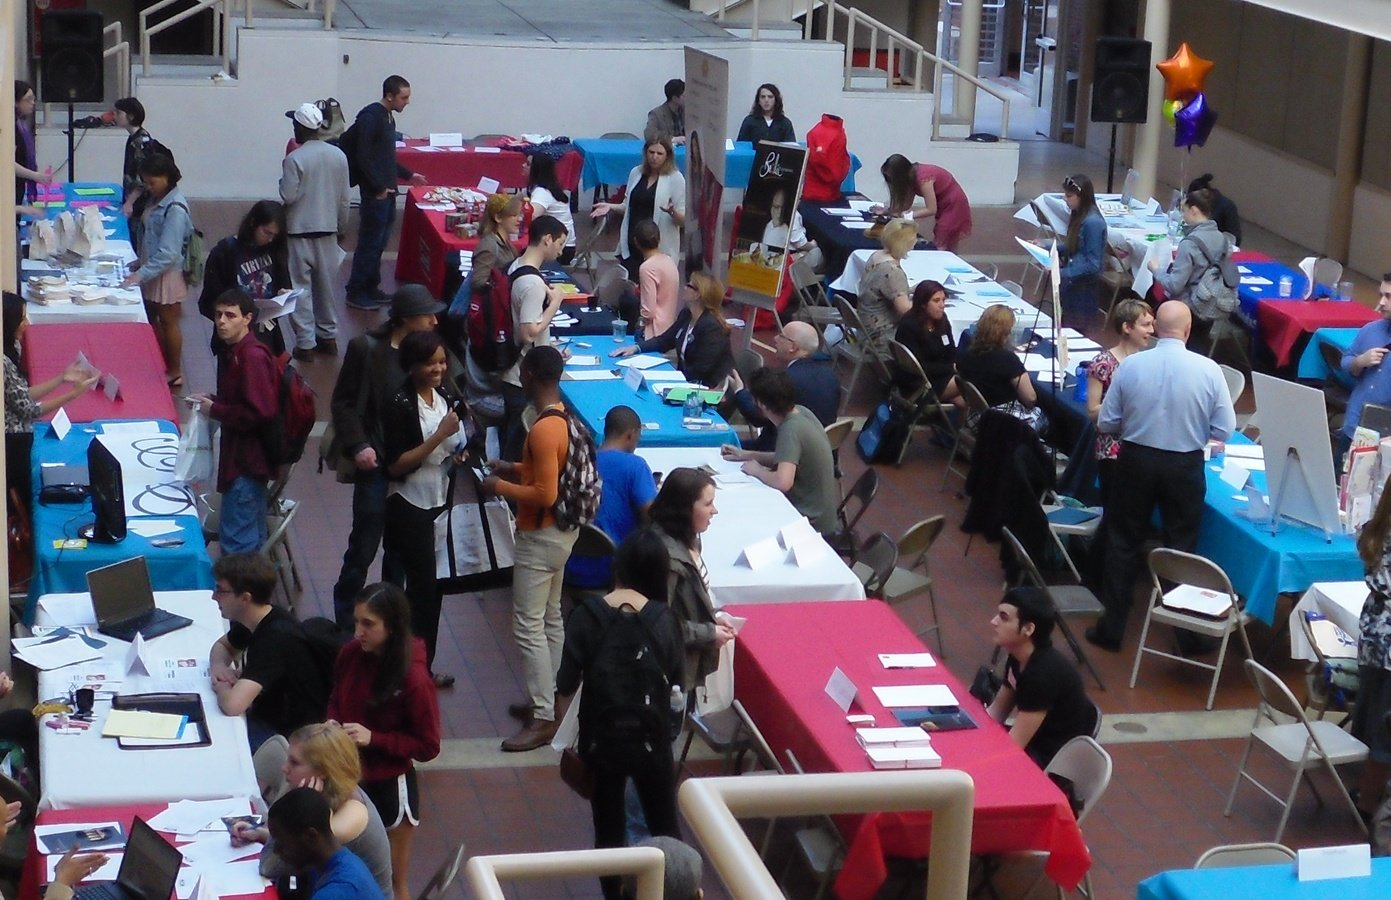 Career Services at the University of the Arts